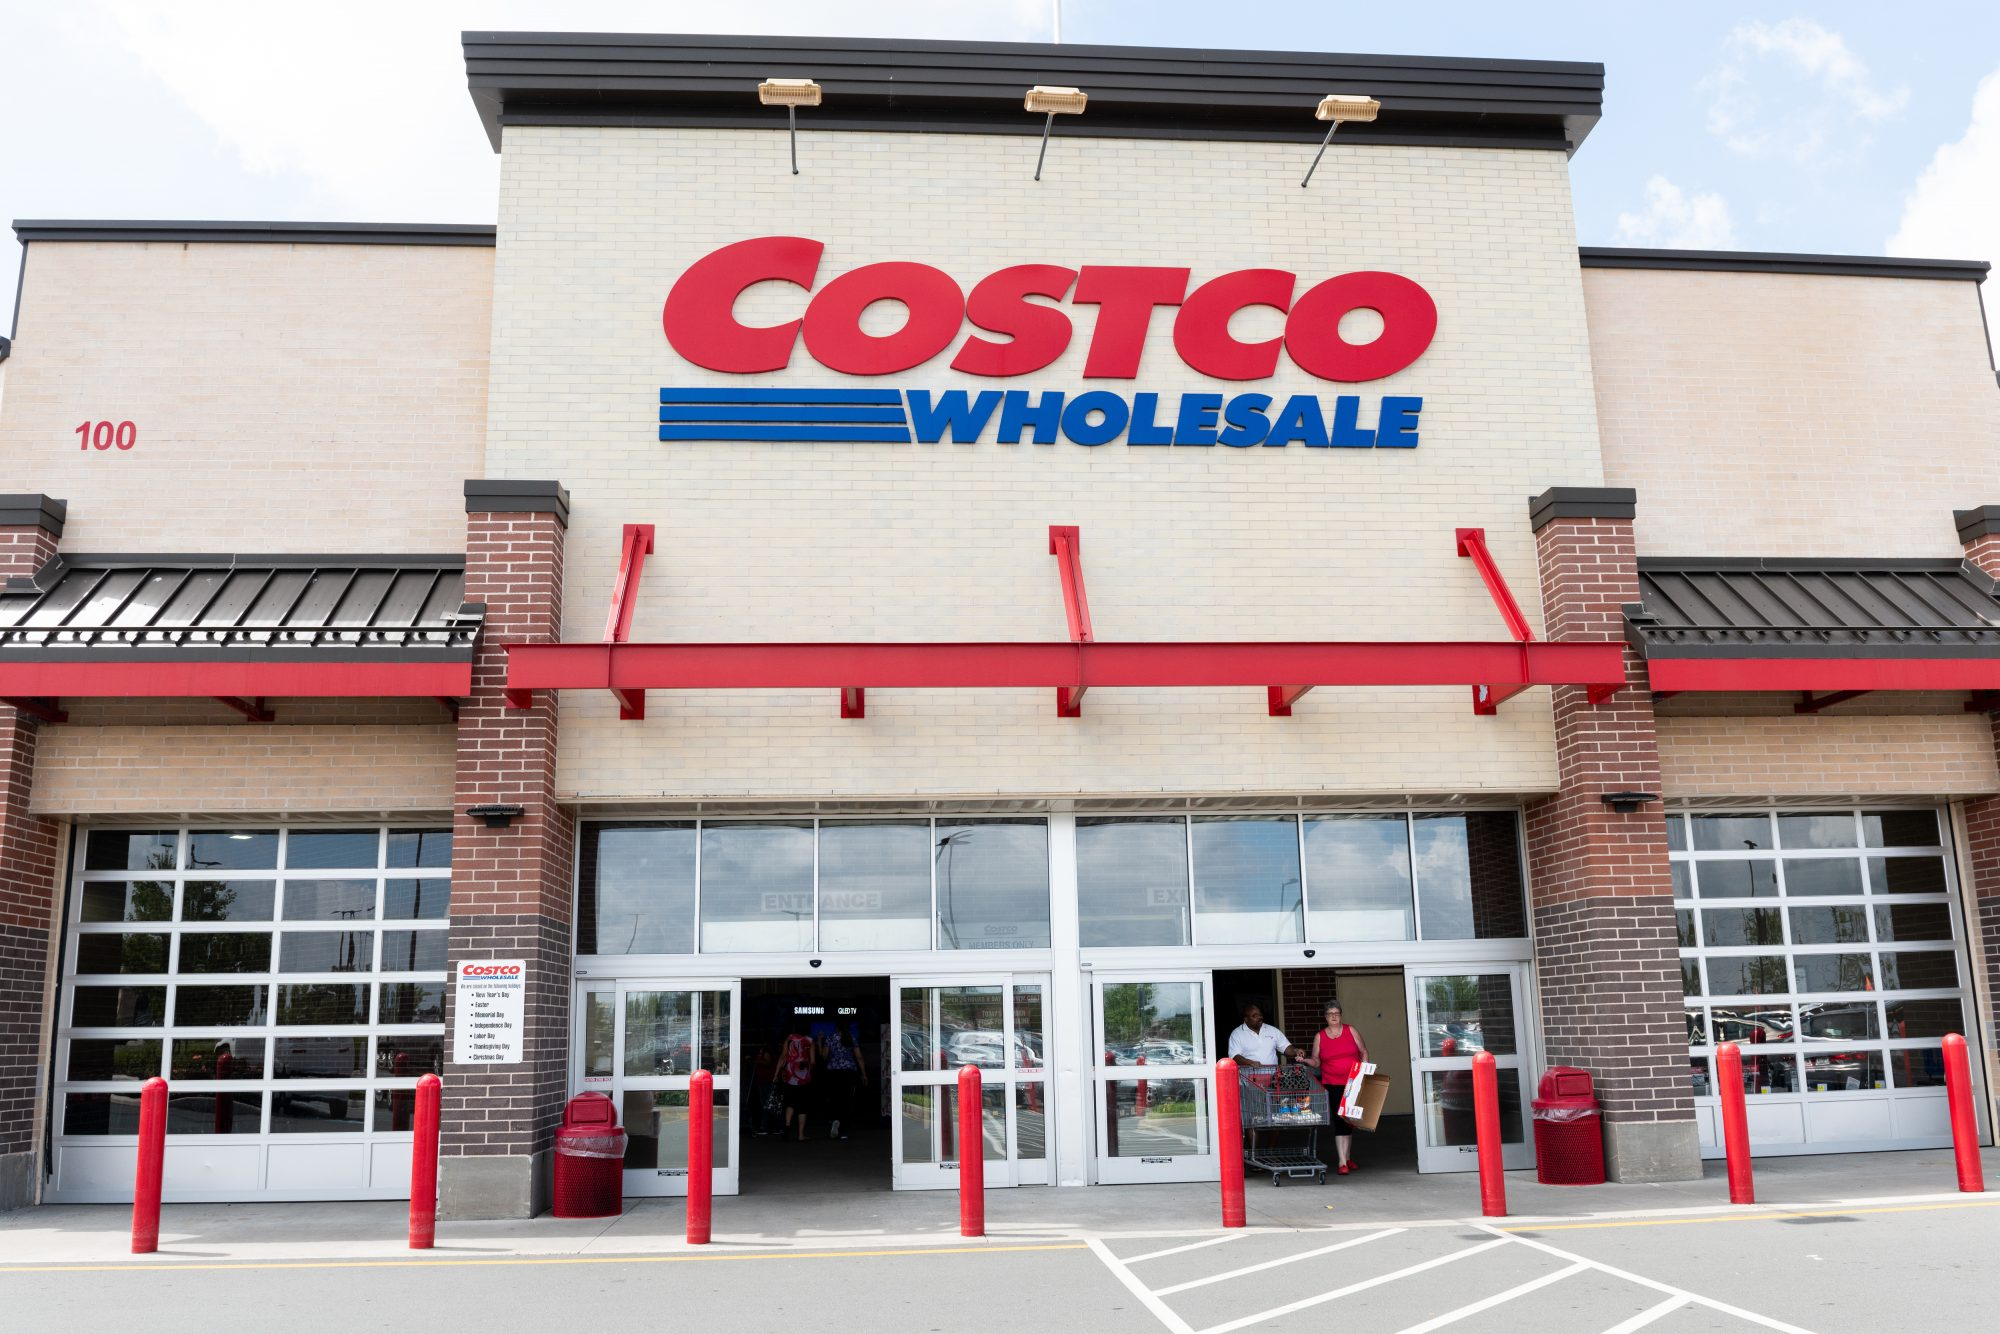 6 Secret Costco Perks That Only True Fans Know About